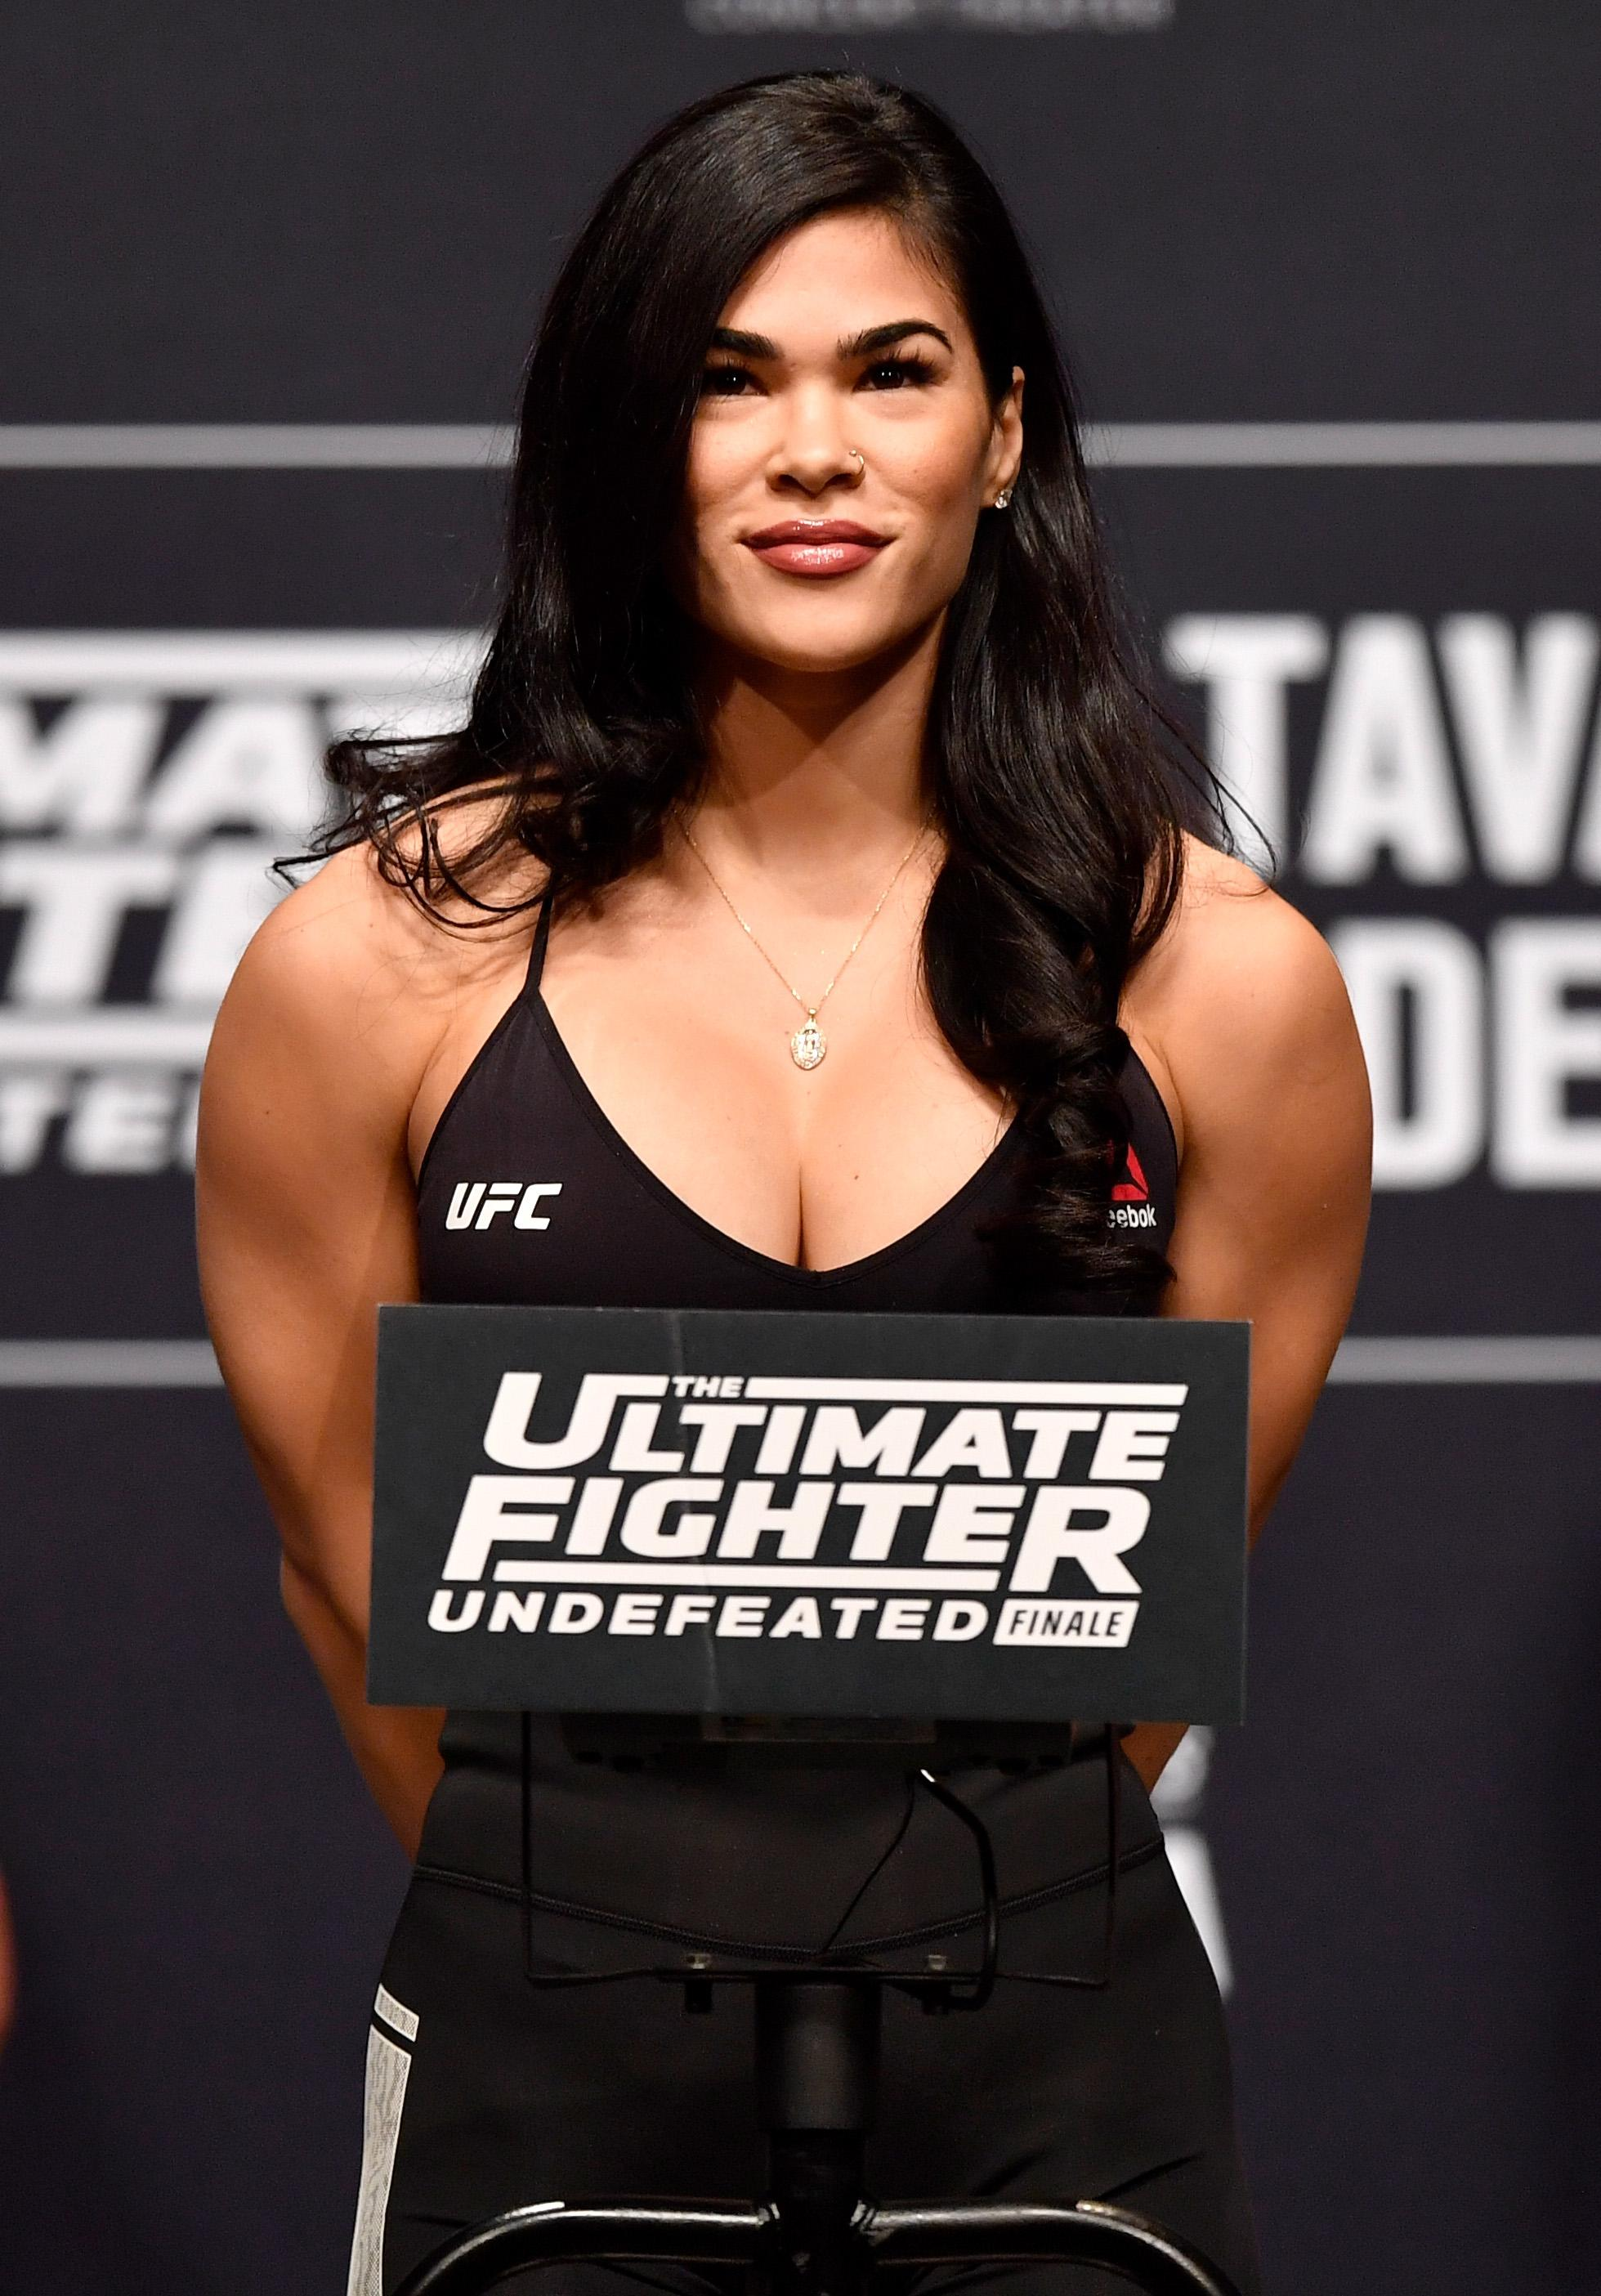 Rachael Ostovich will go ahead with her next fight on January 19